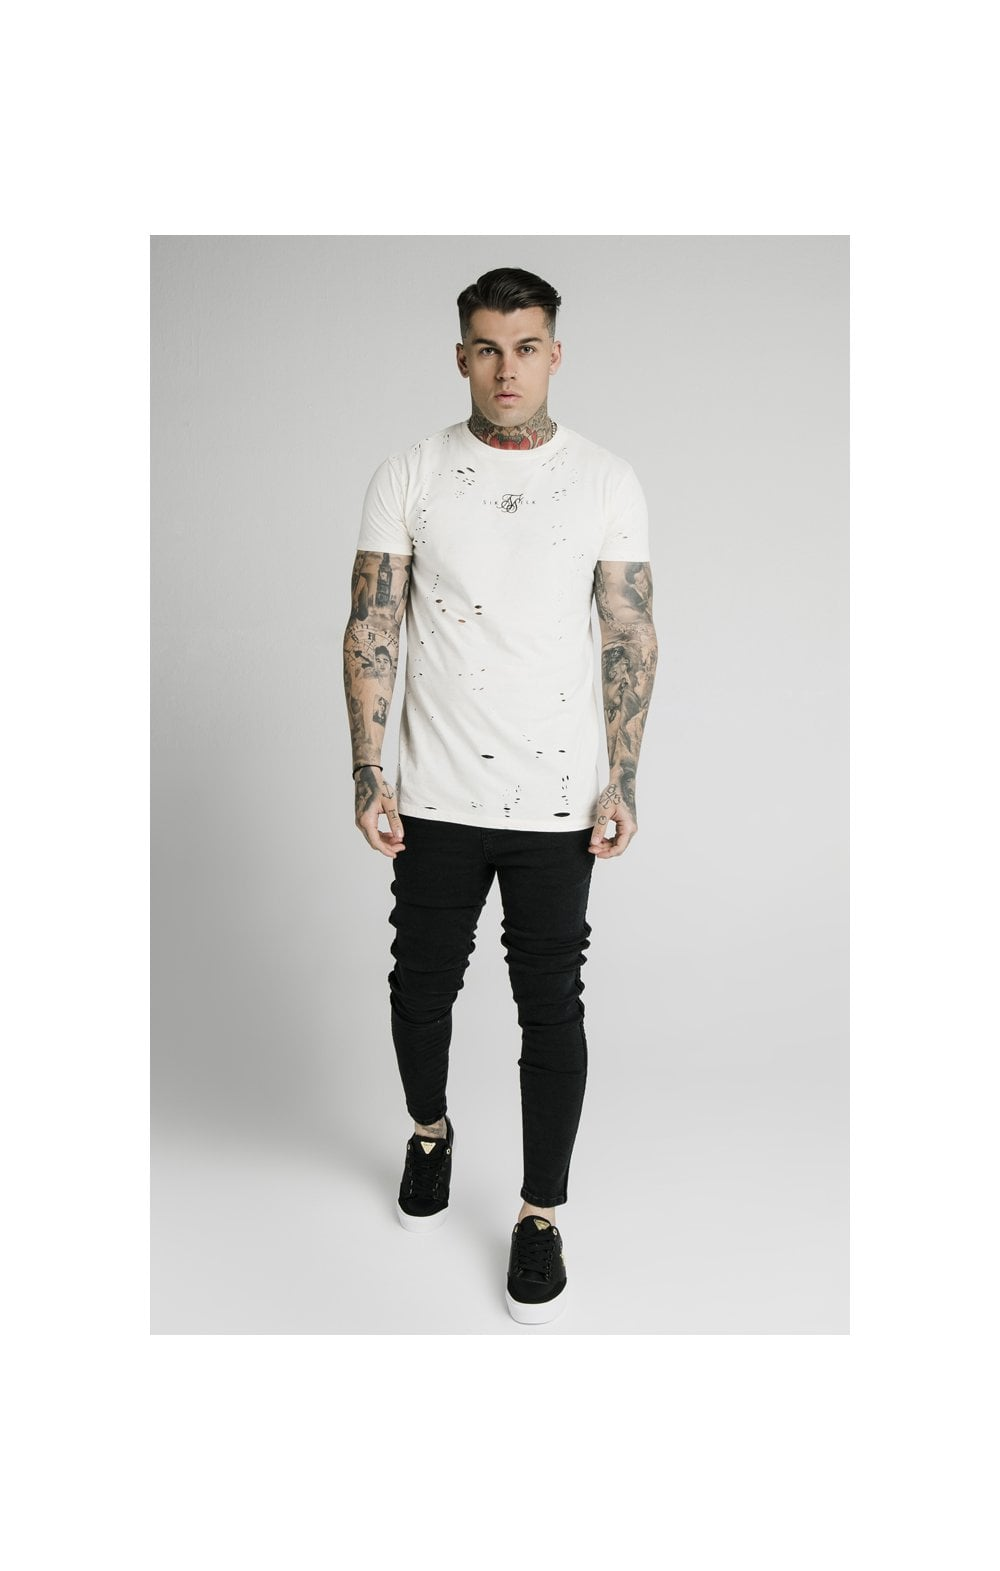 SikSilk S/S Distressed Box Tee - Off White (2)